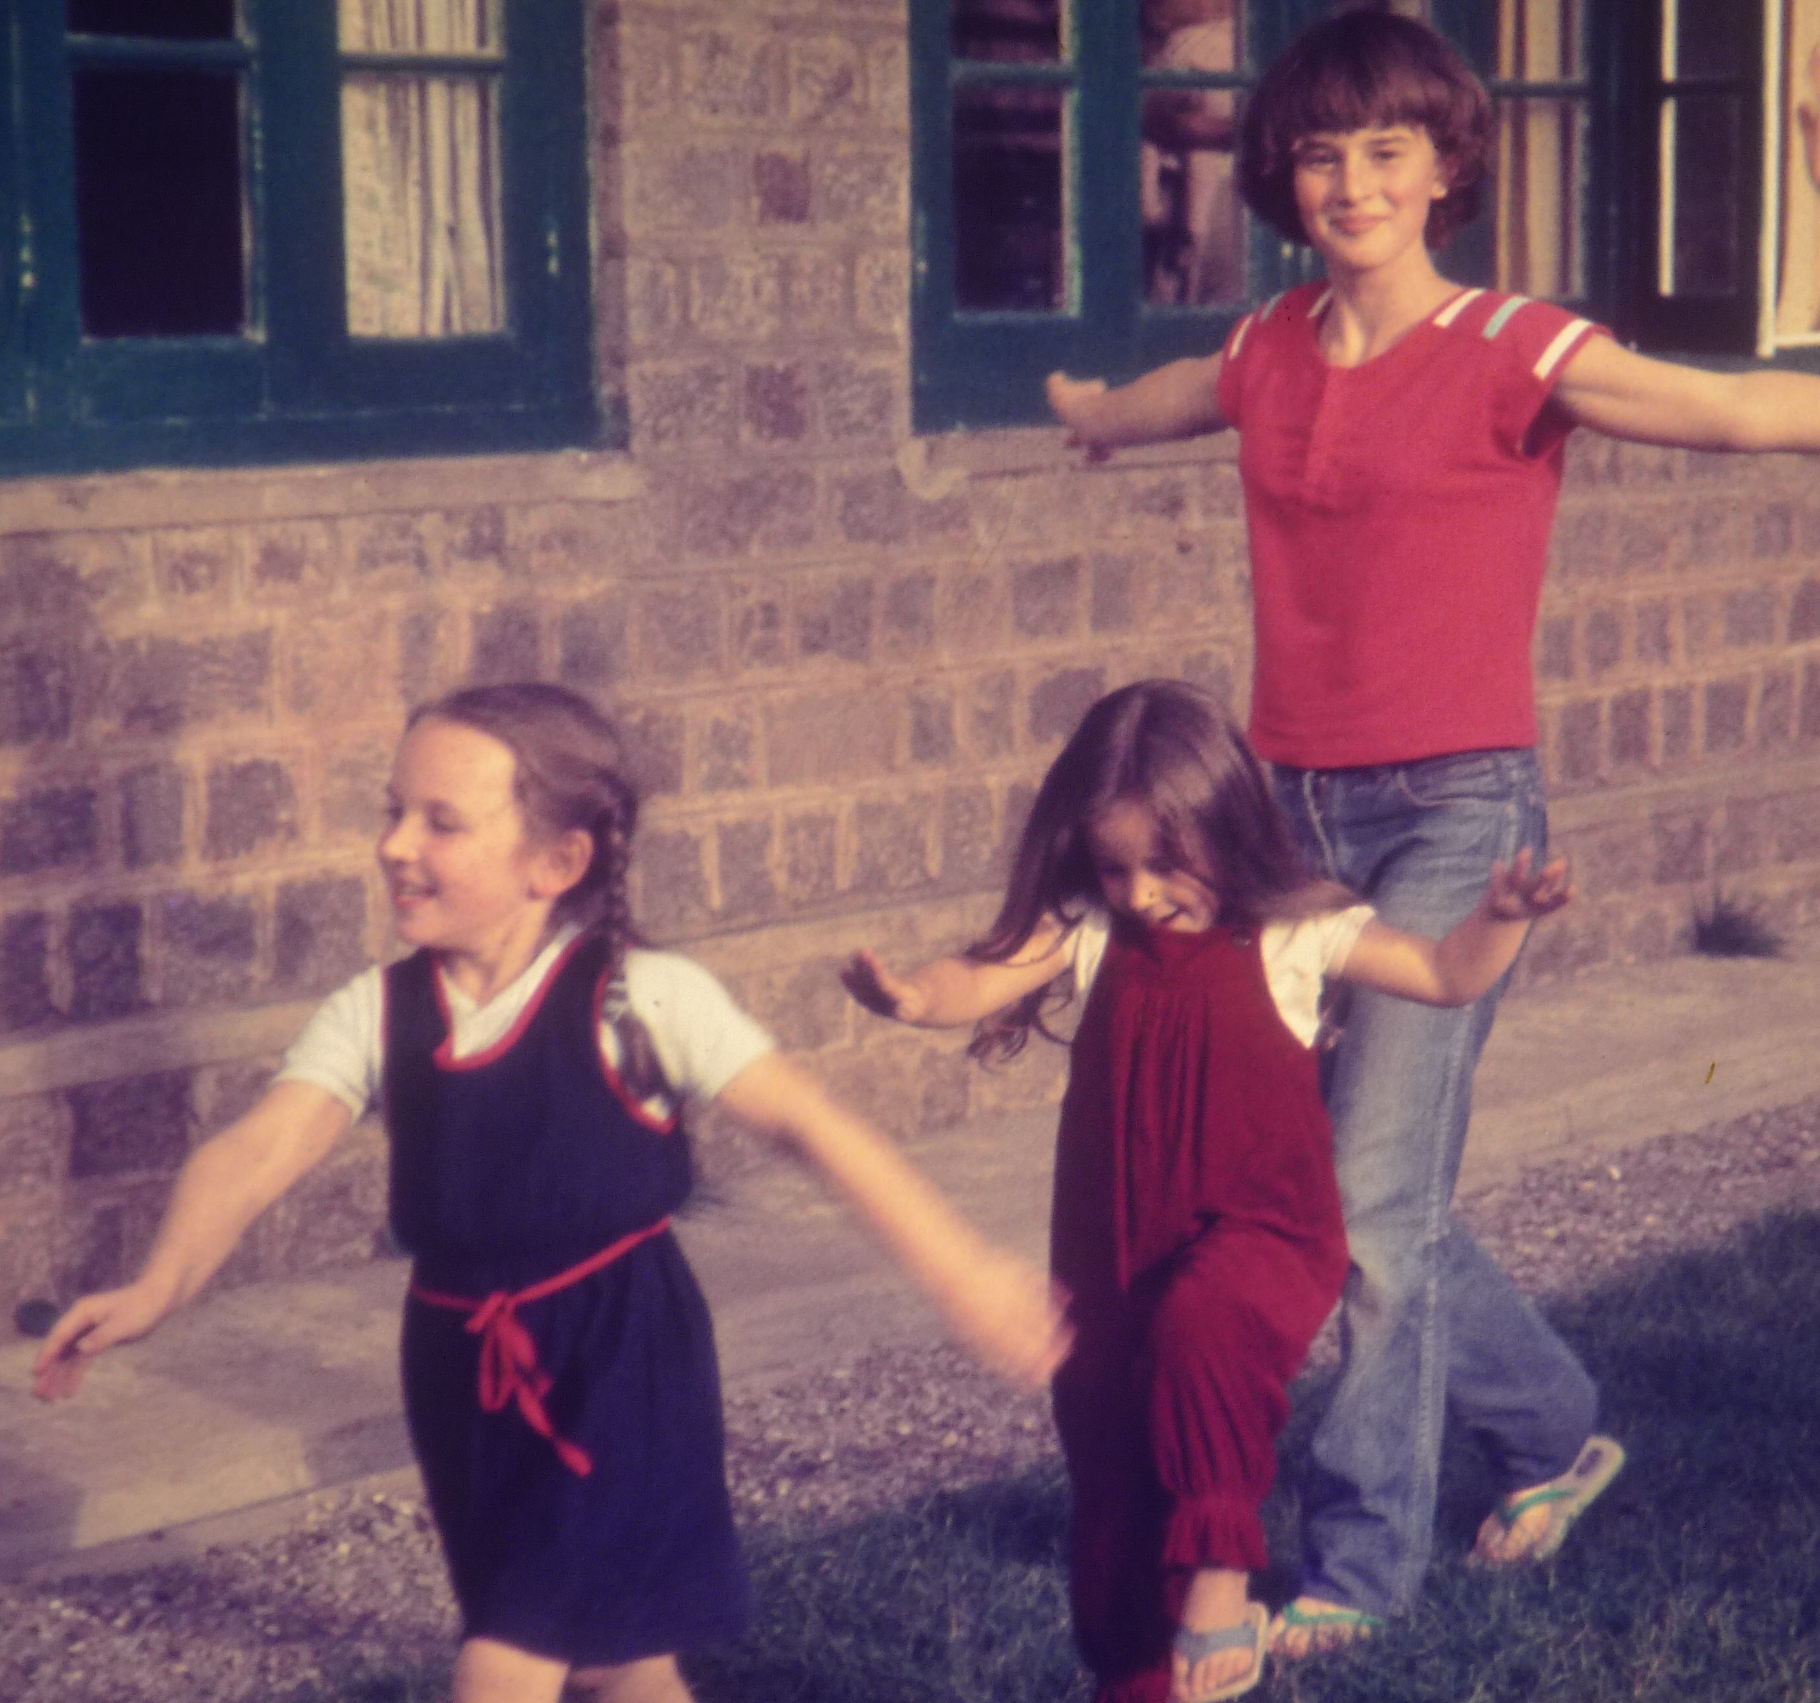 Yep, that's me in the red t-shirt at age 12, doing some babysitting and playing follow the leader.